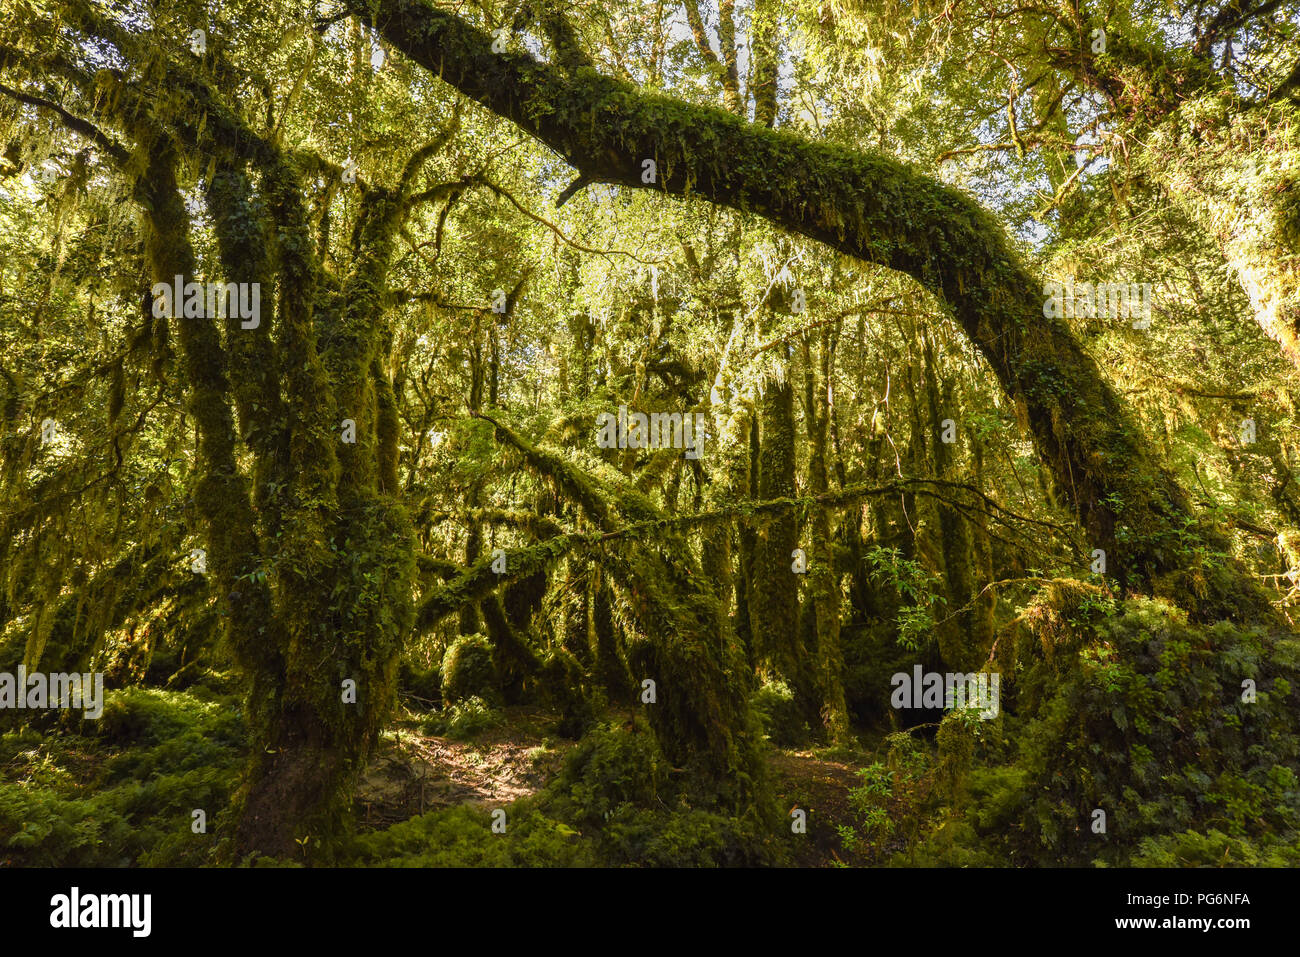 El Bosque Encantado, enchanted or bewitched forest, temperate rainforest with moss and lichen, Carratera Austral, Queulat - Stock Image